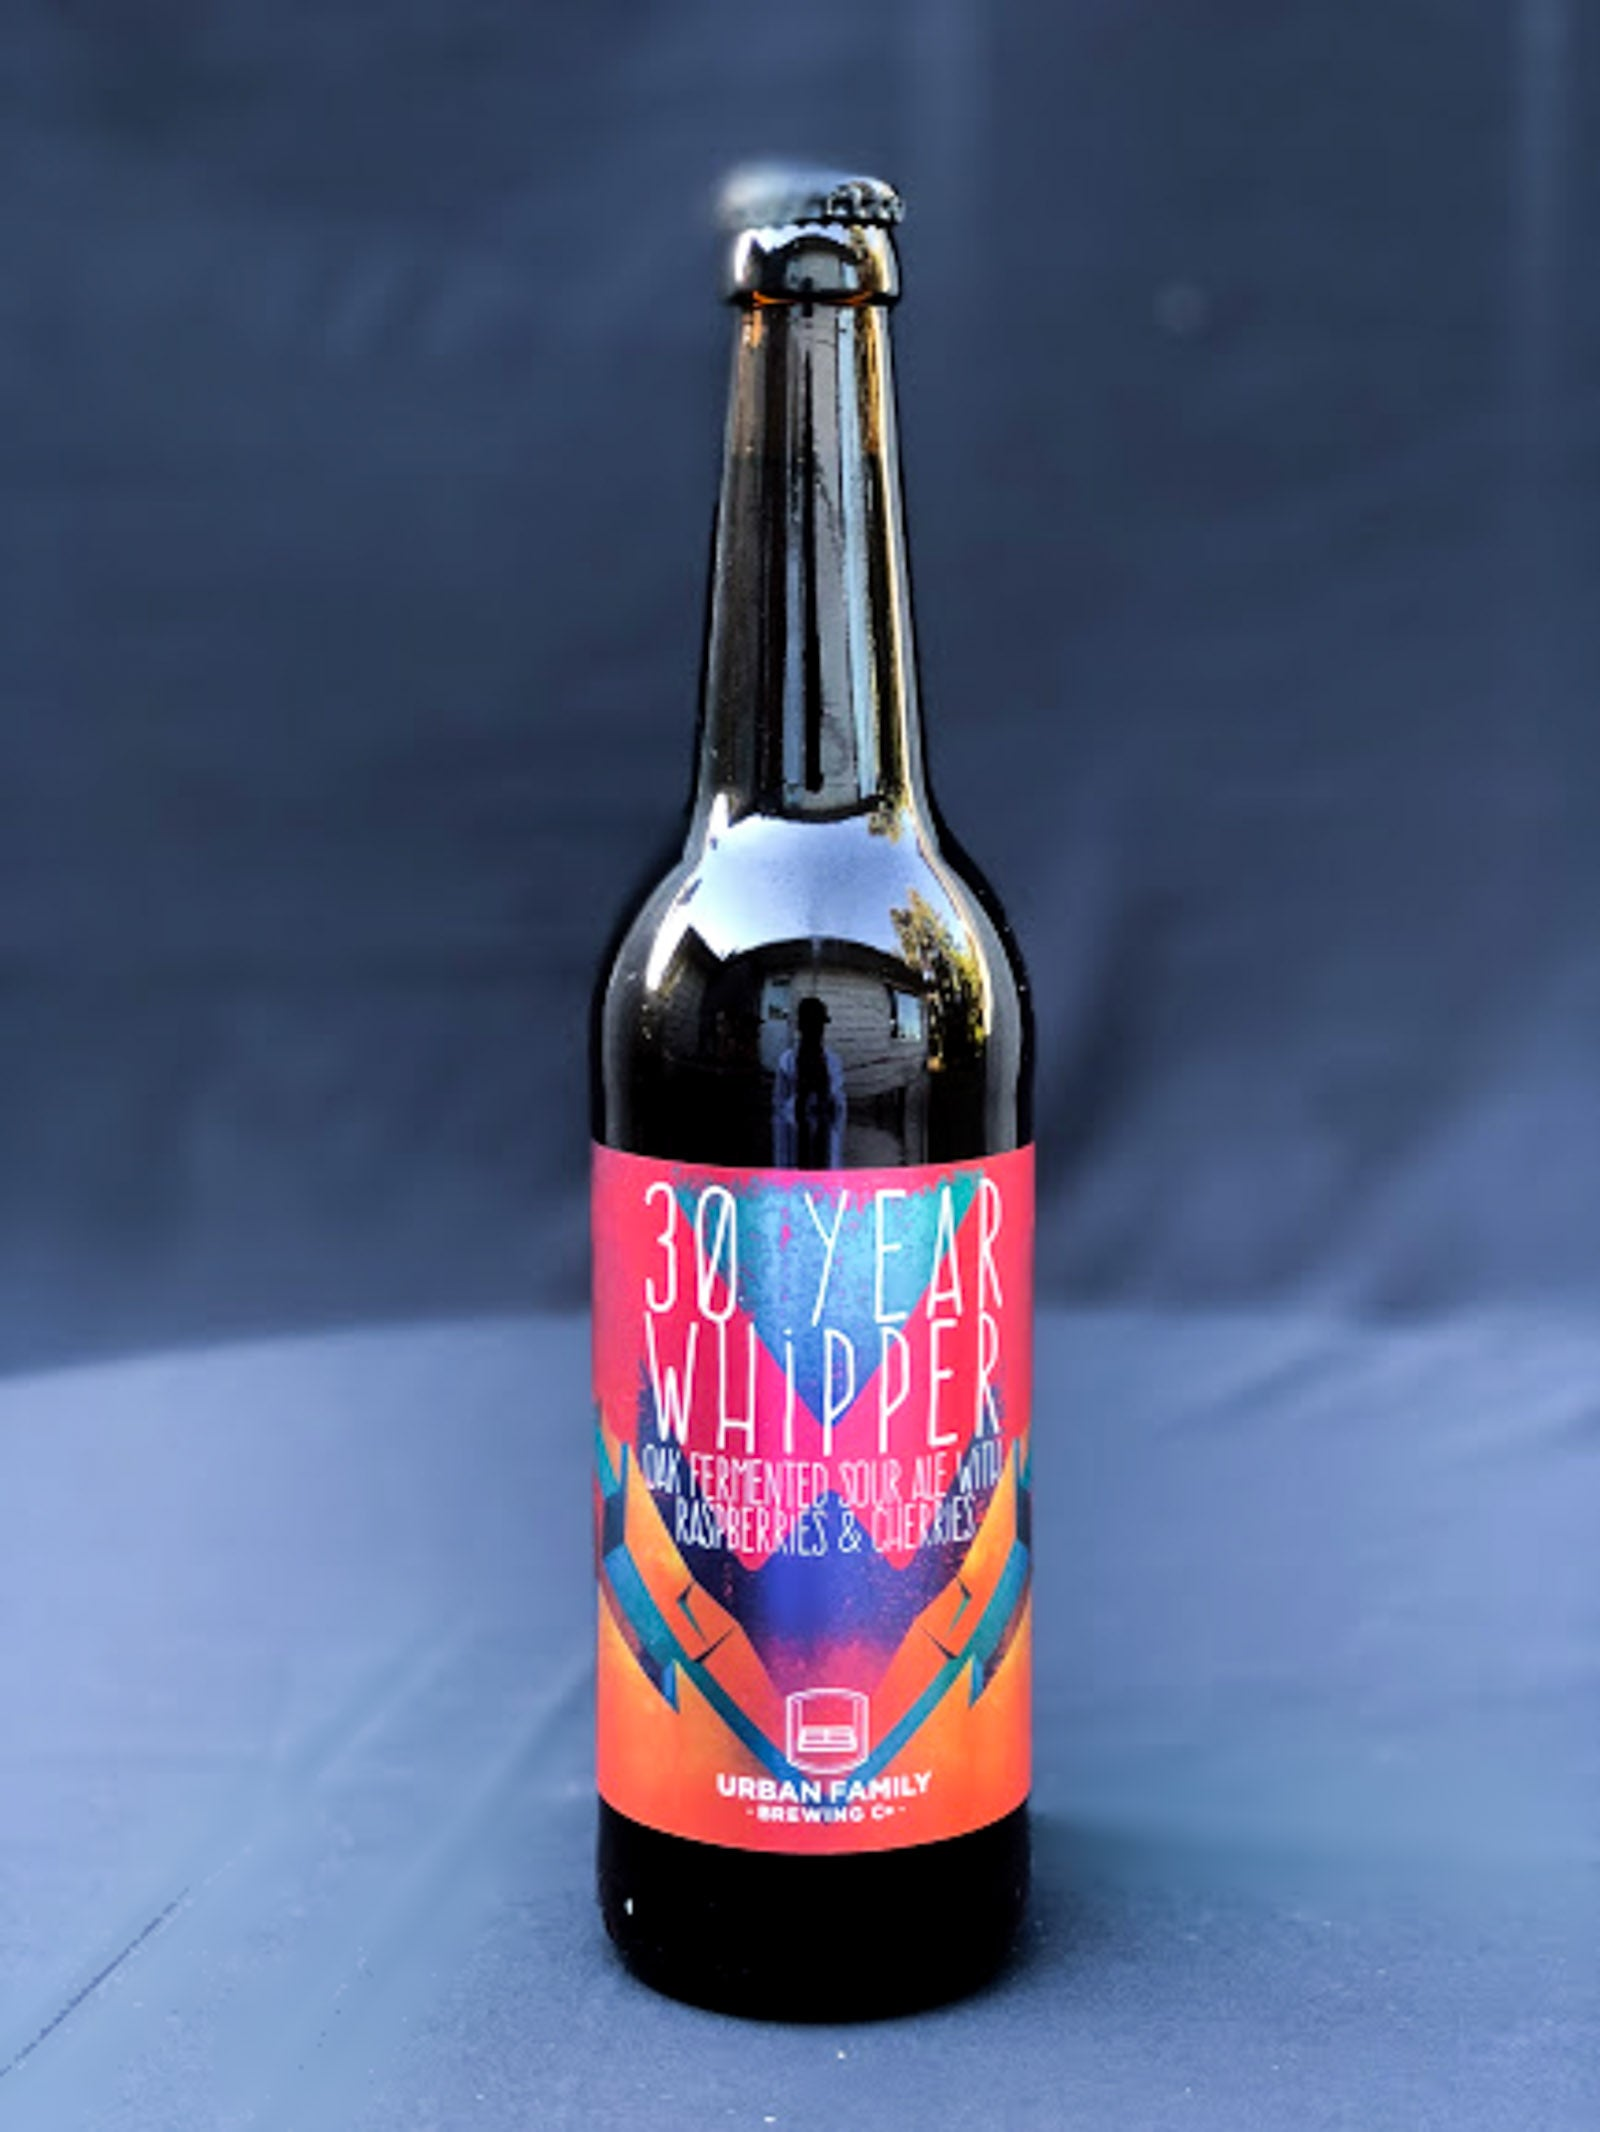 Urban Family Brewing 30 Year Whipper: Oak Fermented Sour Ale with Raspberries & Cherries